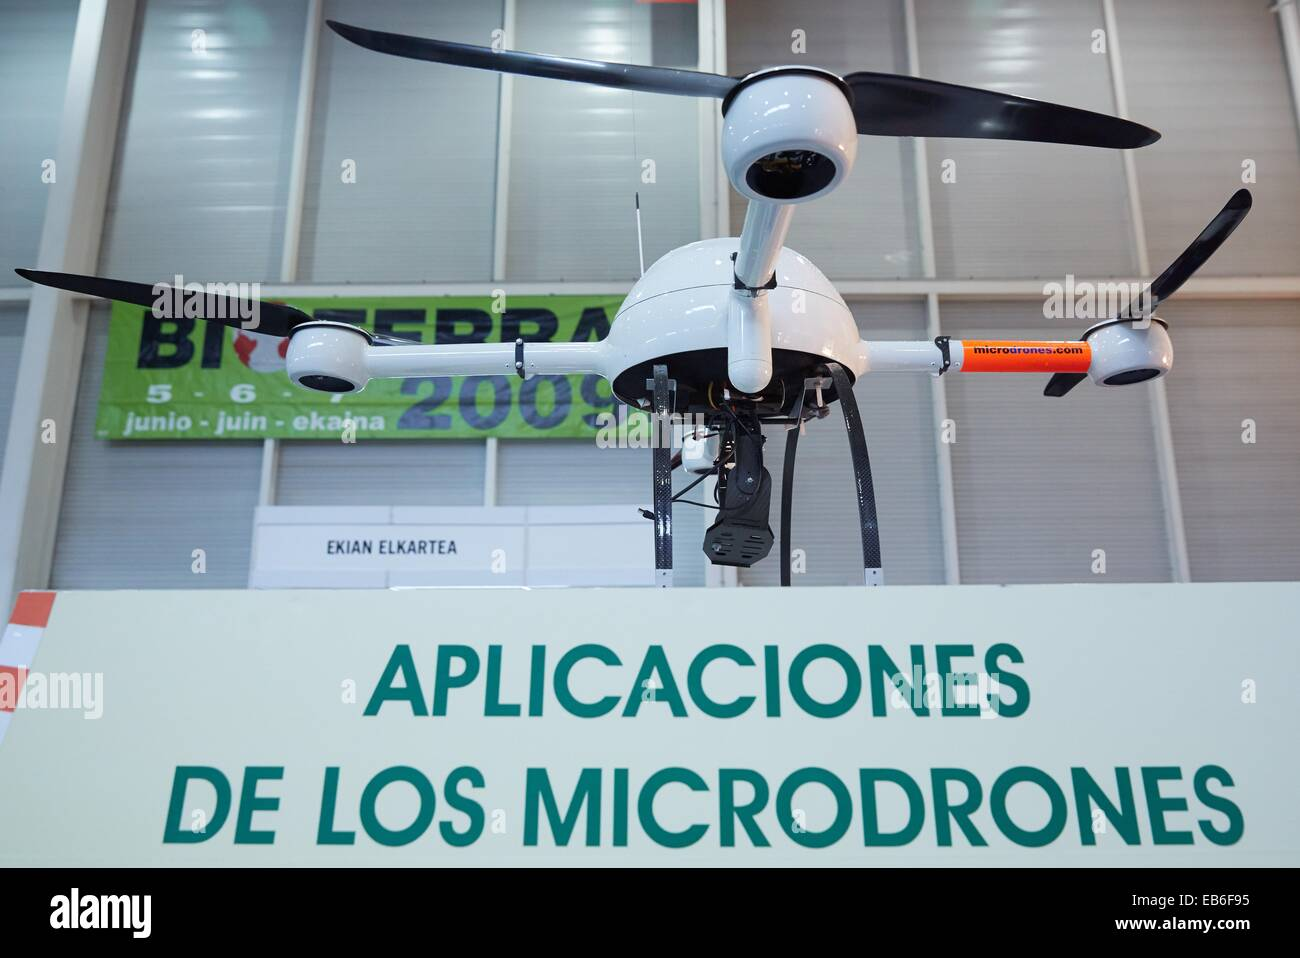 Microdrones Bioterra fair of organic products green building renewable energy and responsible consumption Ficoba - Stock Image